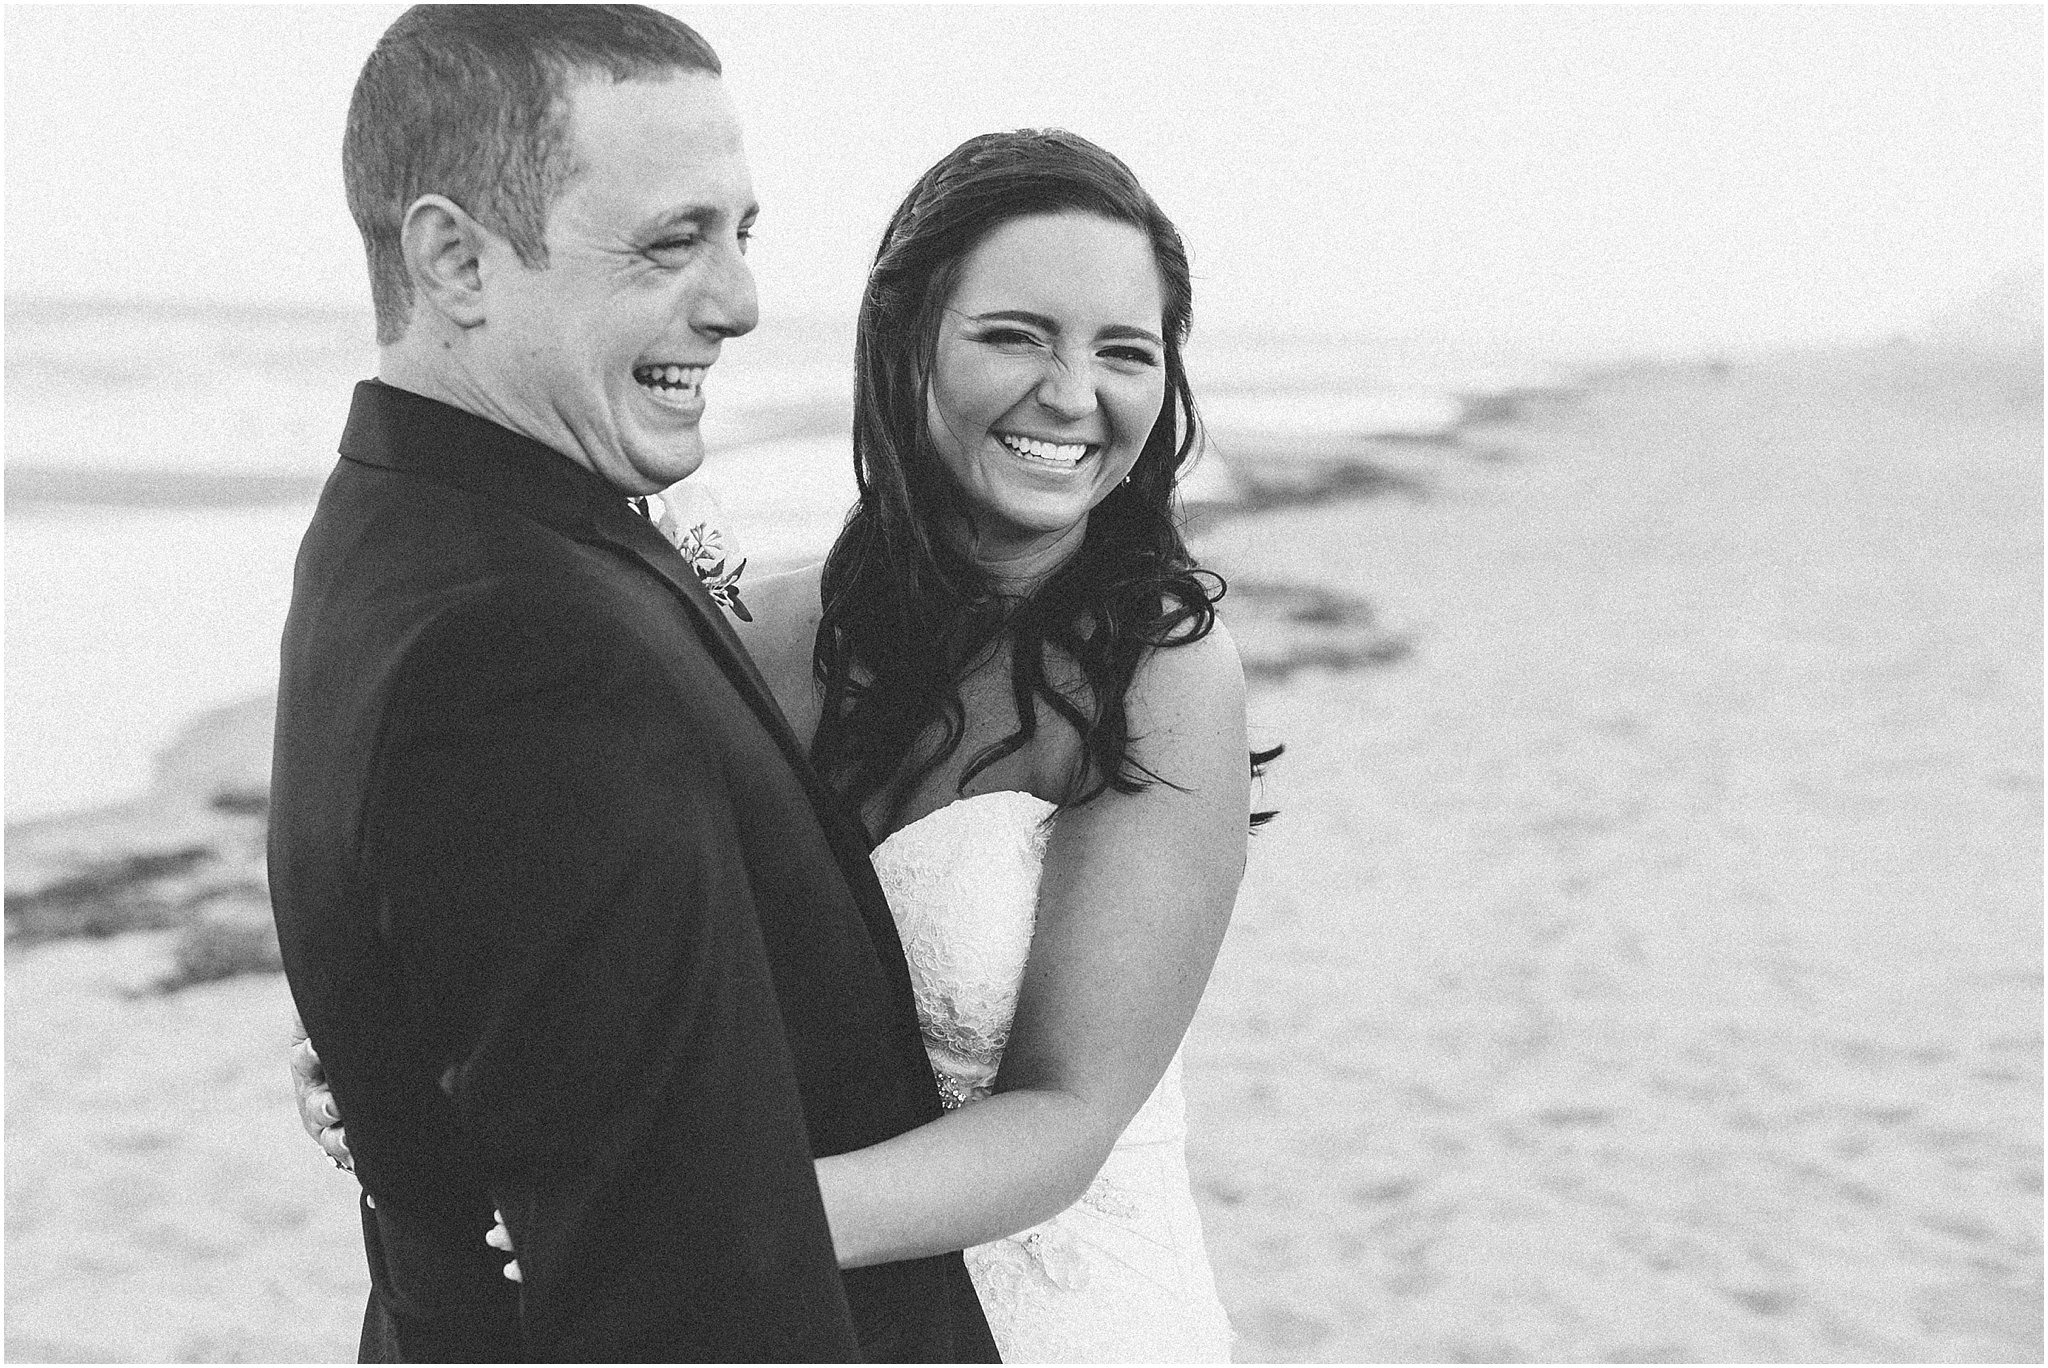 jessica_ryan_photography_wedding_virginia_beach_oceanfront_holiday_inn_north_suites_hotel_wedding_0691